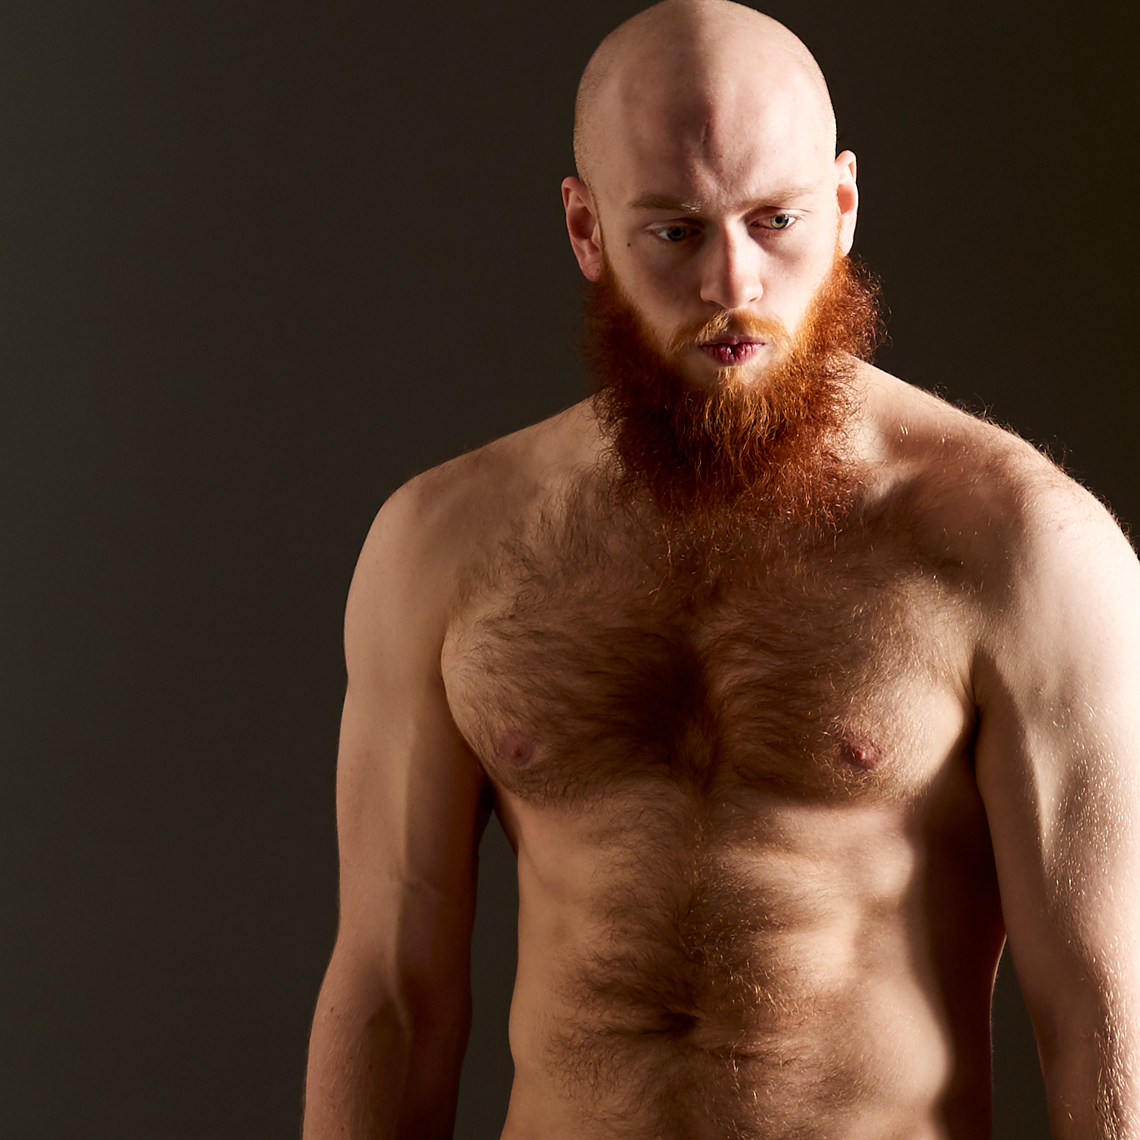 Cooper topless muscular bald man with  hairy chest red hair